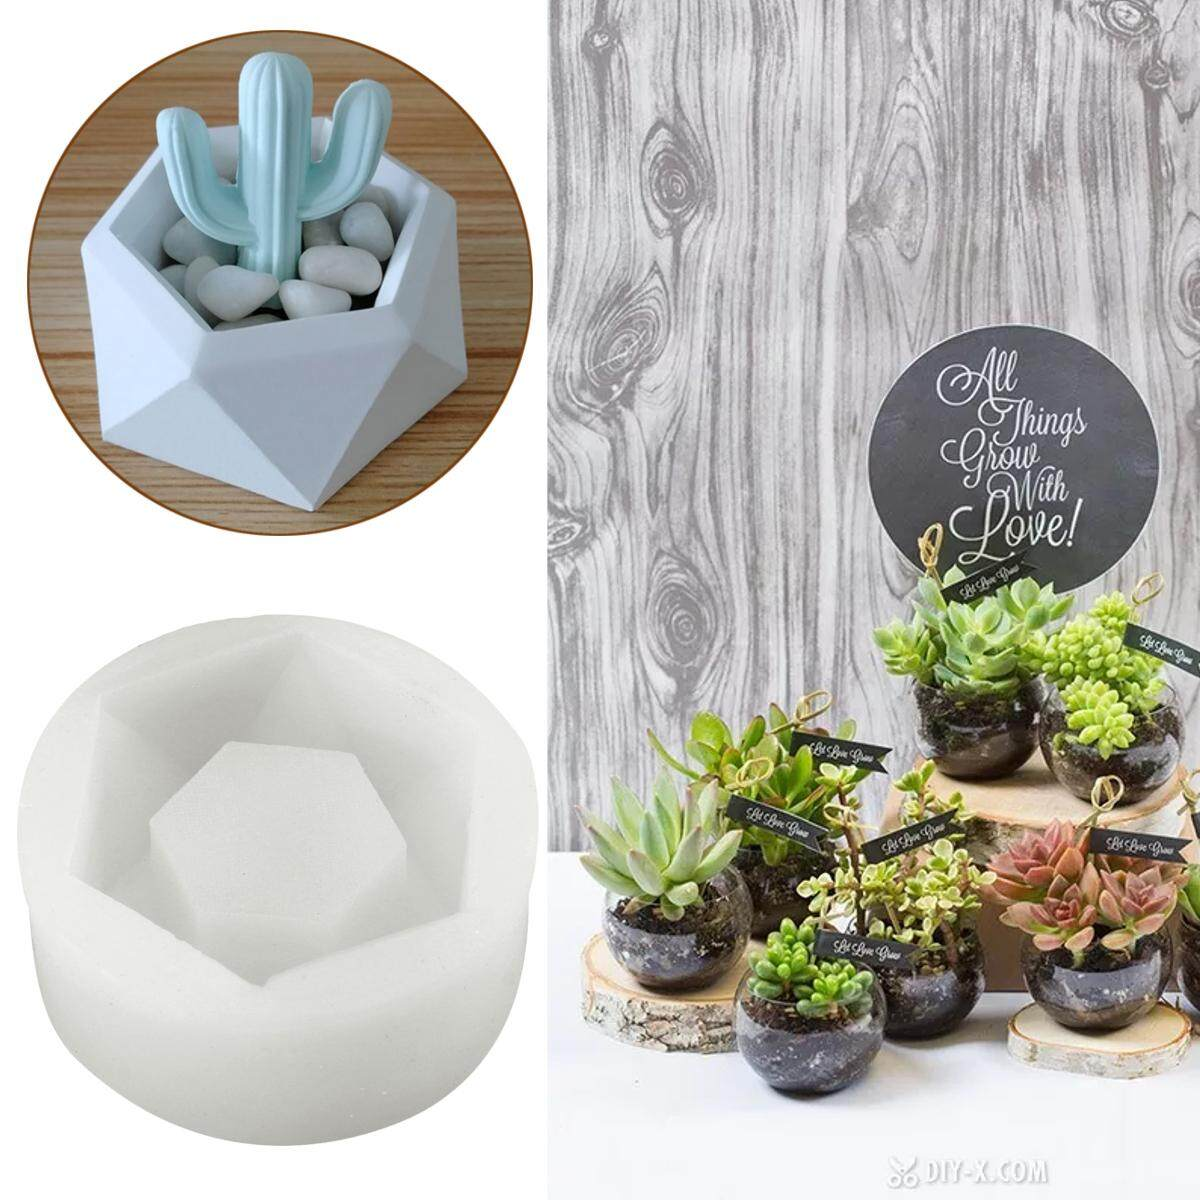 3D Geometric Flower Pot Silicone Molds DIY Garden Planter Concrete Vase Mould Tool